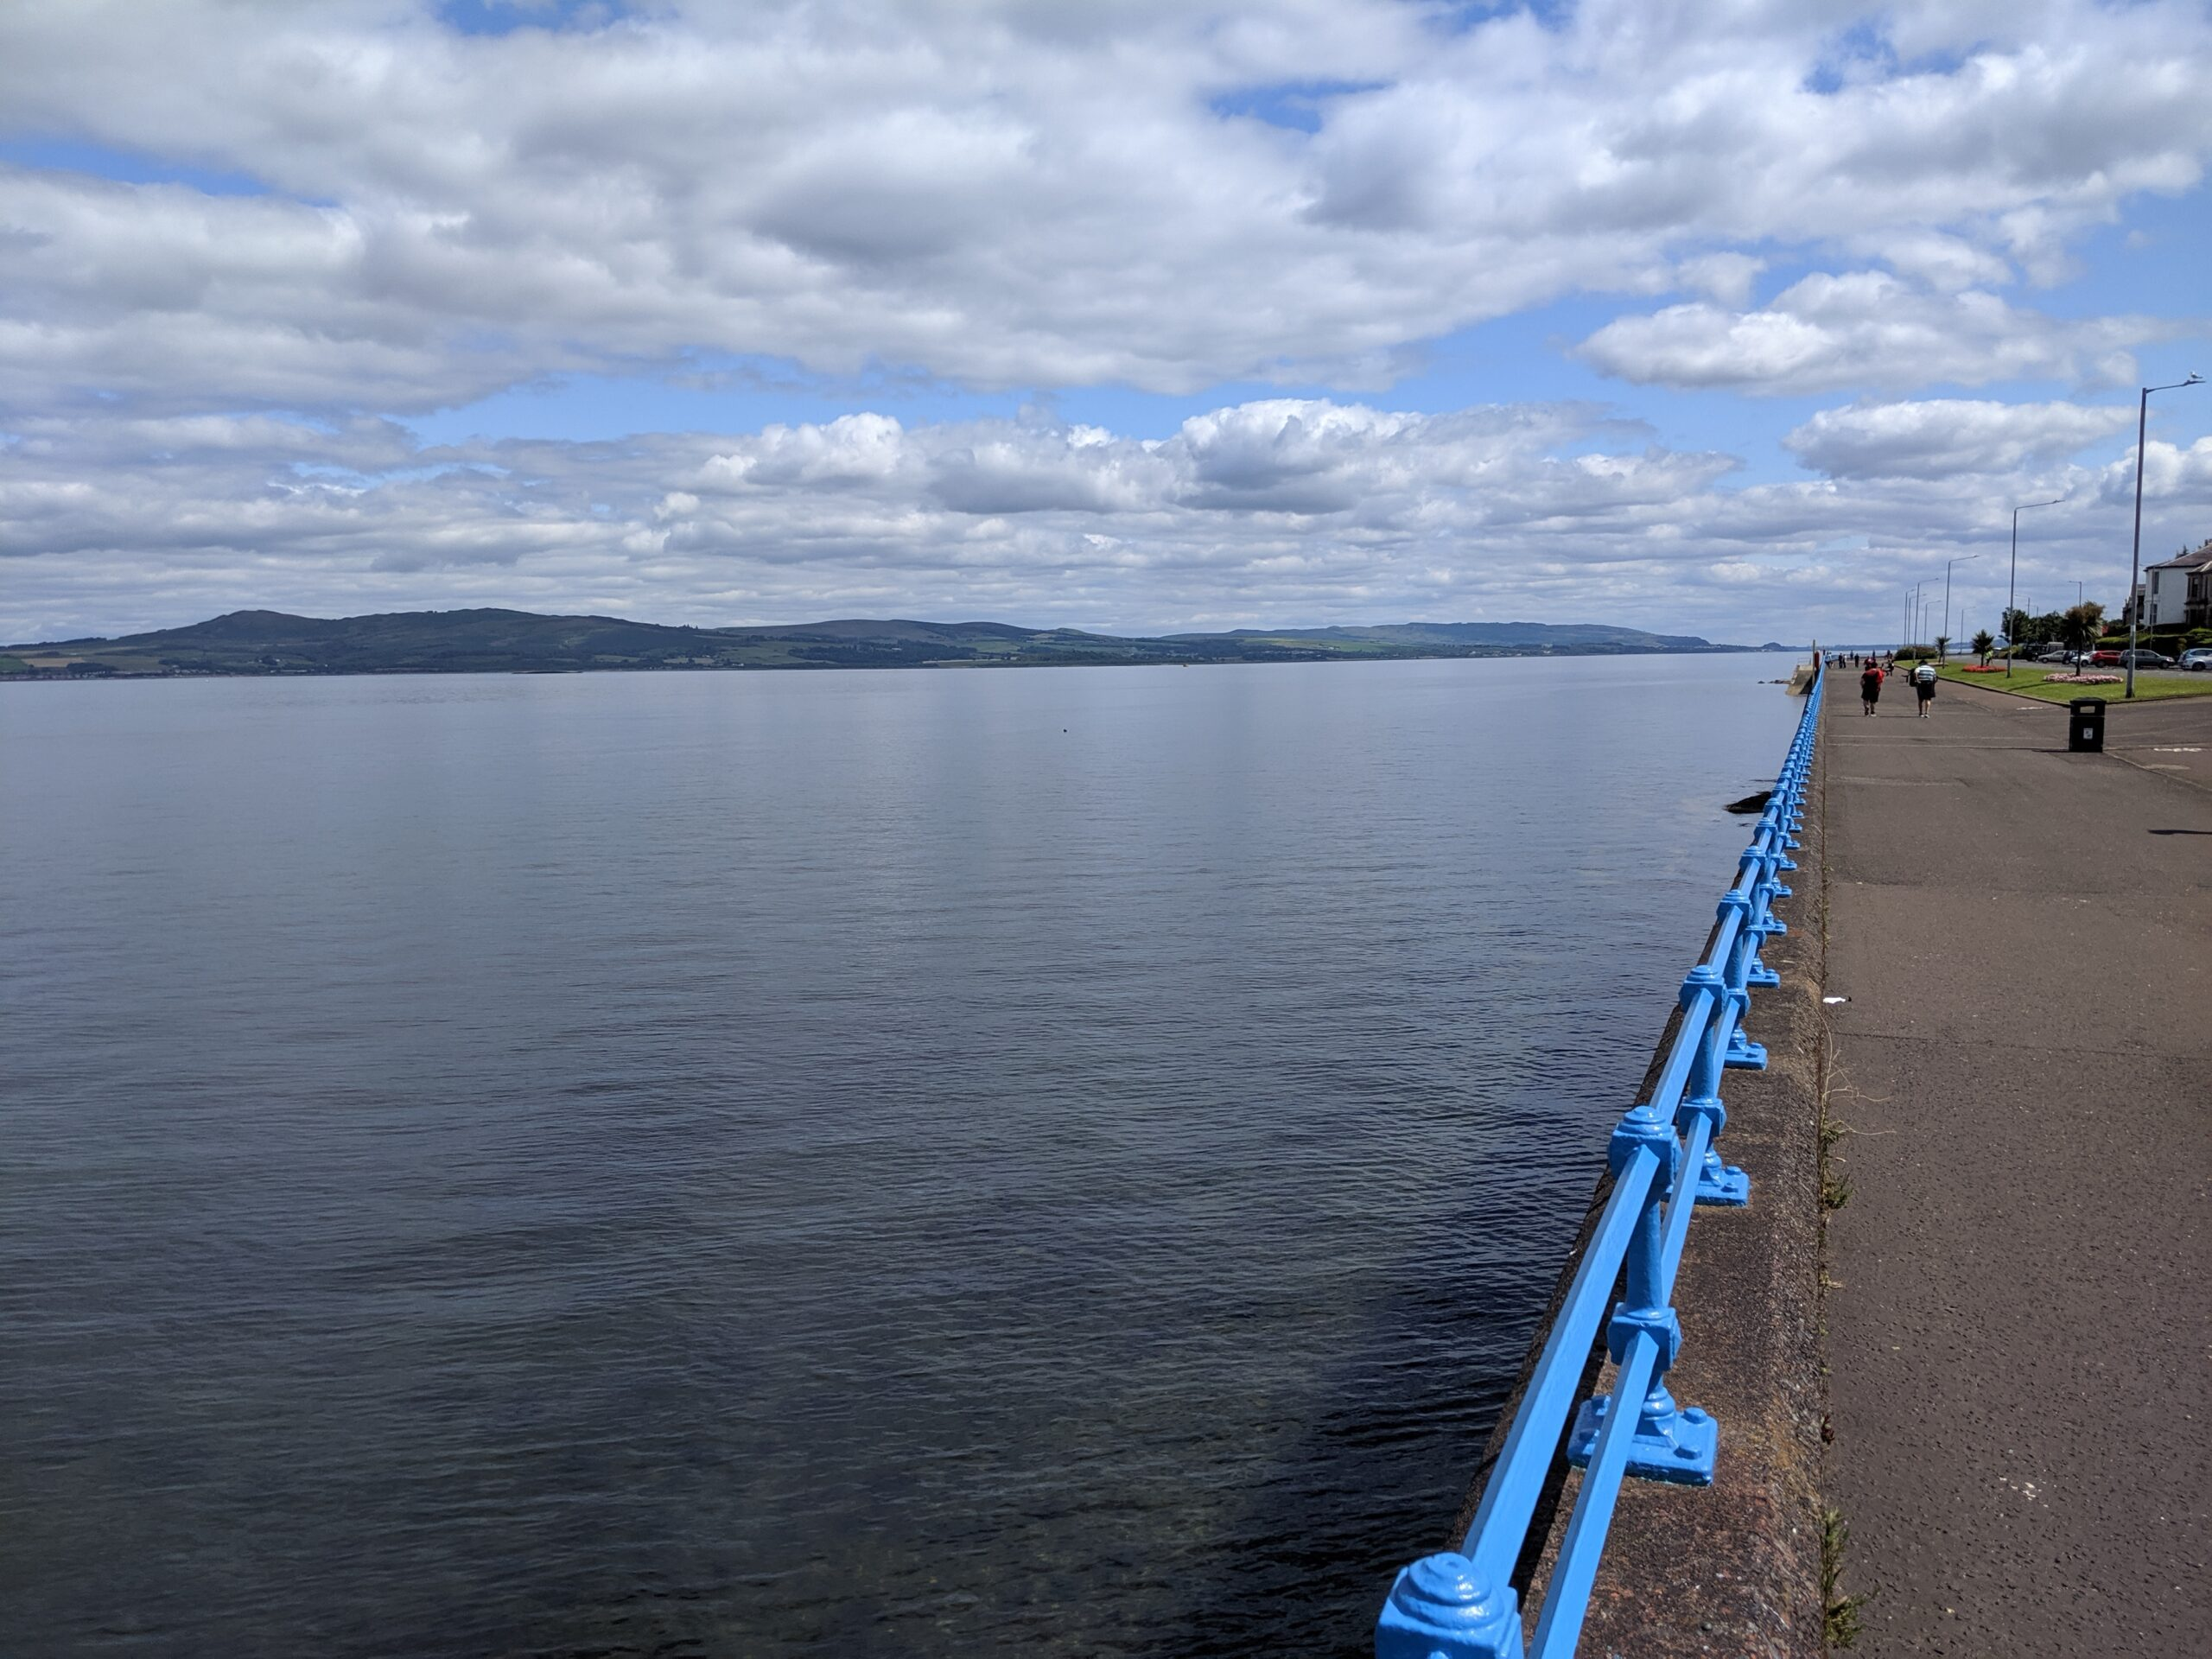 The port of Greenock lies on the Firth of the Clyde River. A wide river with a blue protective rail and pavement on the right, and mountains across the river.